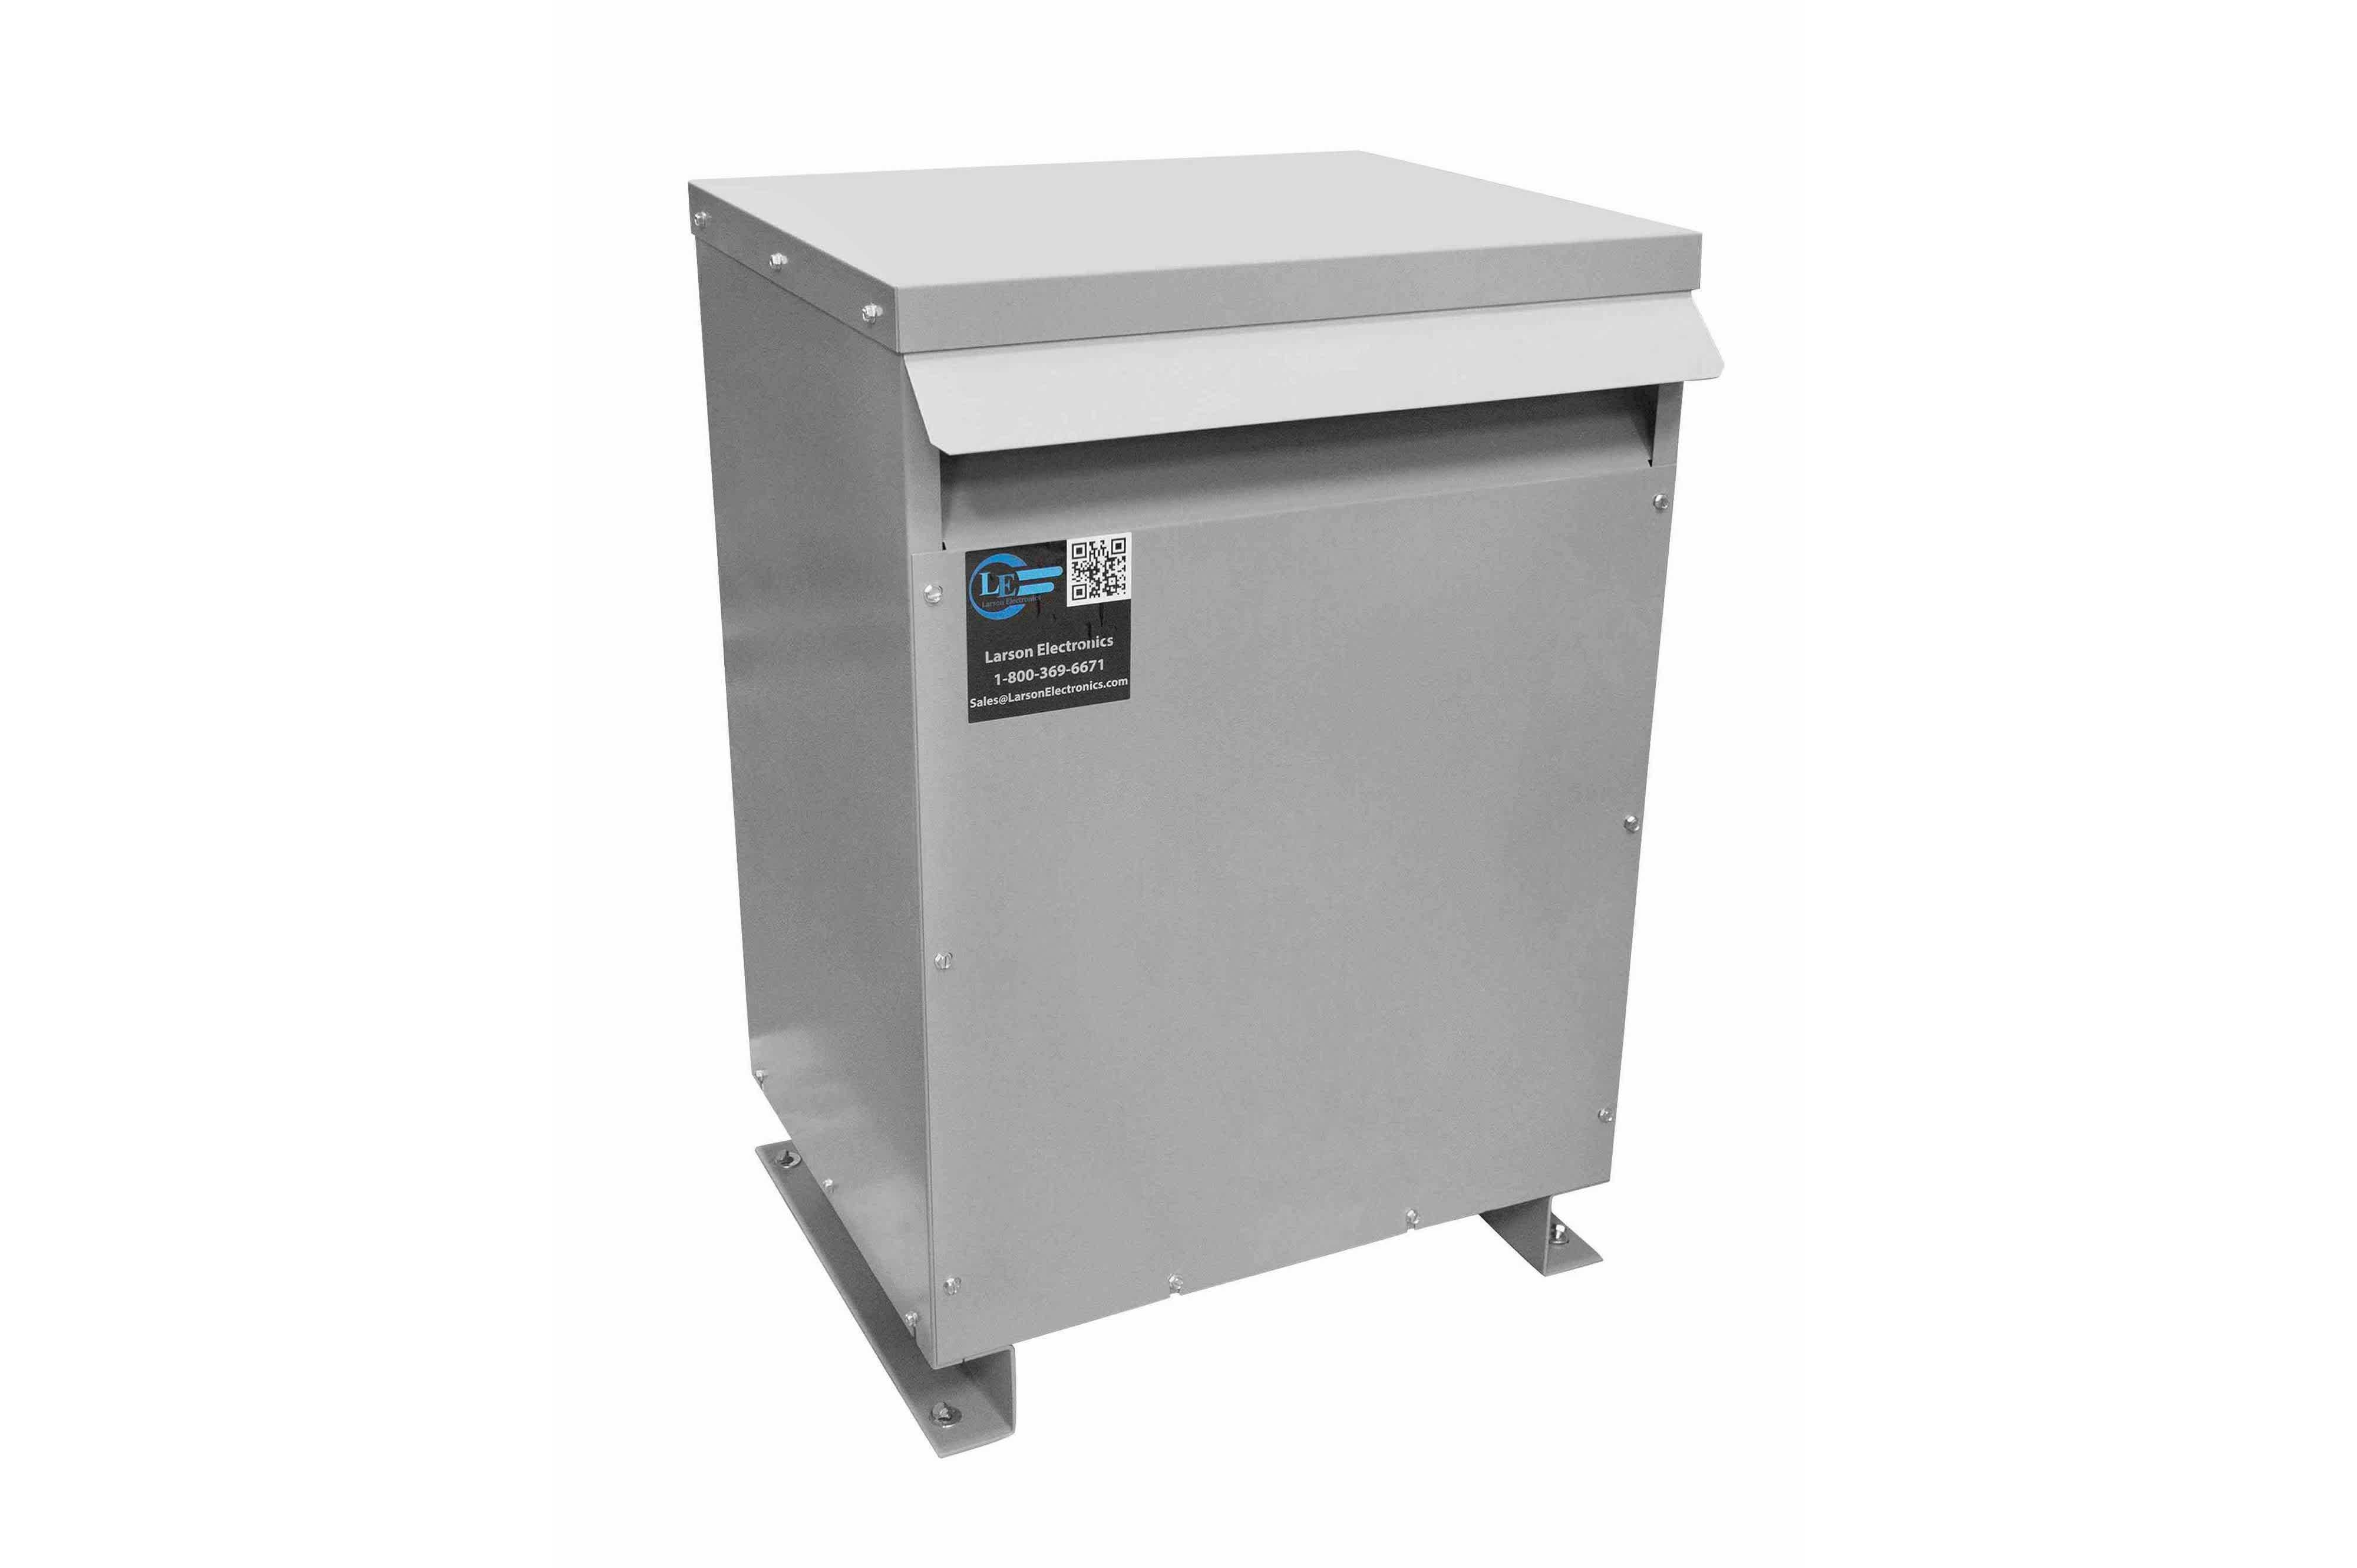 65 kVA 3PH Isolation Transformer, 600V Delta Primary, 400V Delta Secondary, N3R, Ventilated, 60 Hz